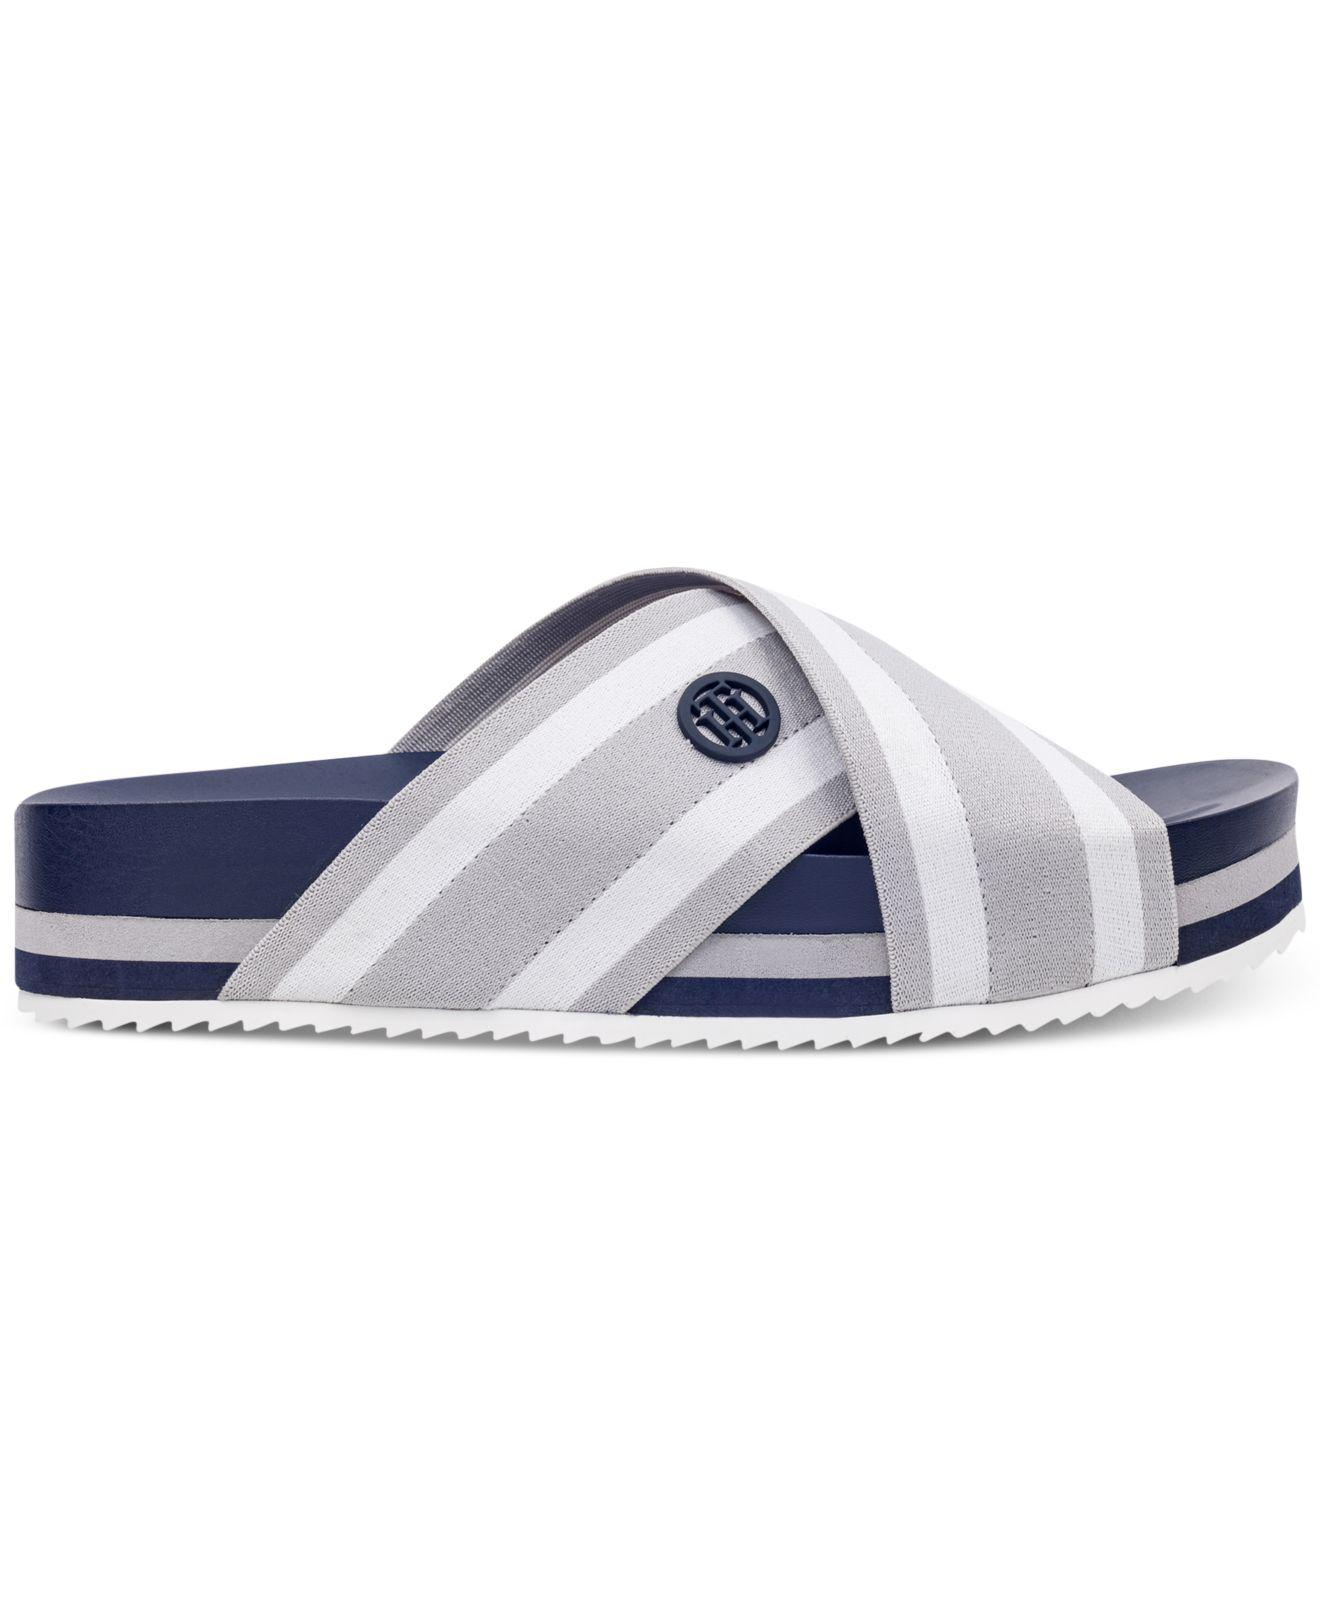 49538e247 Lyst - Tommy Hilfiger Blysse Flatform Sandals in Blue for Men